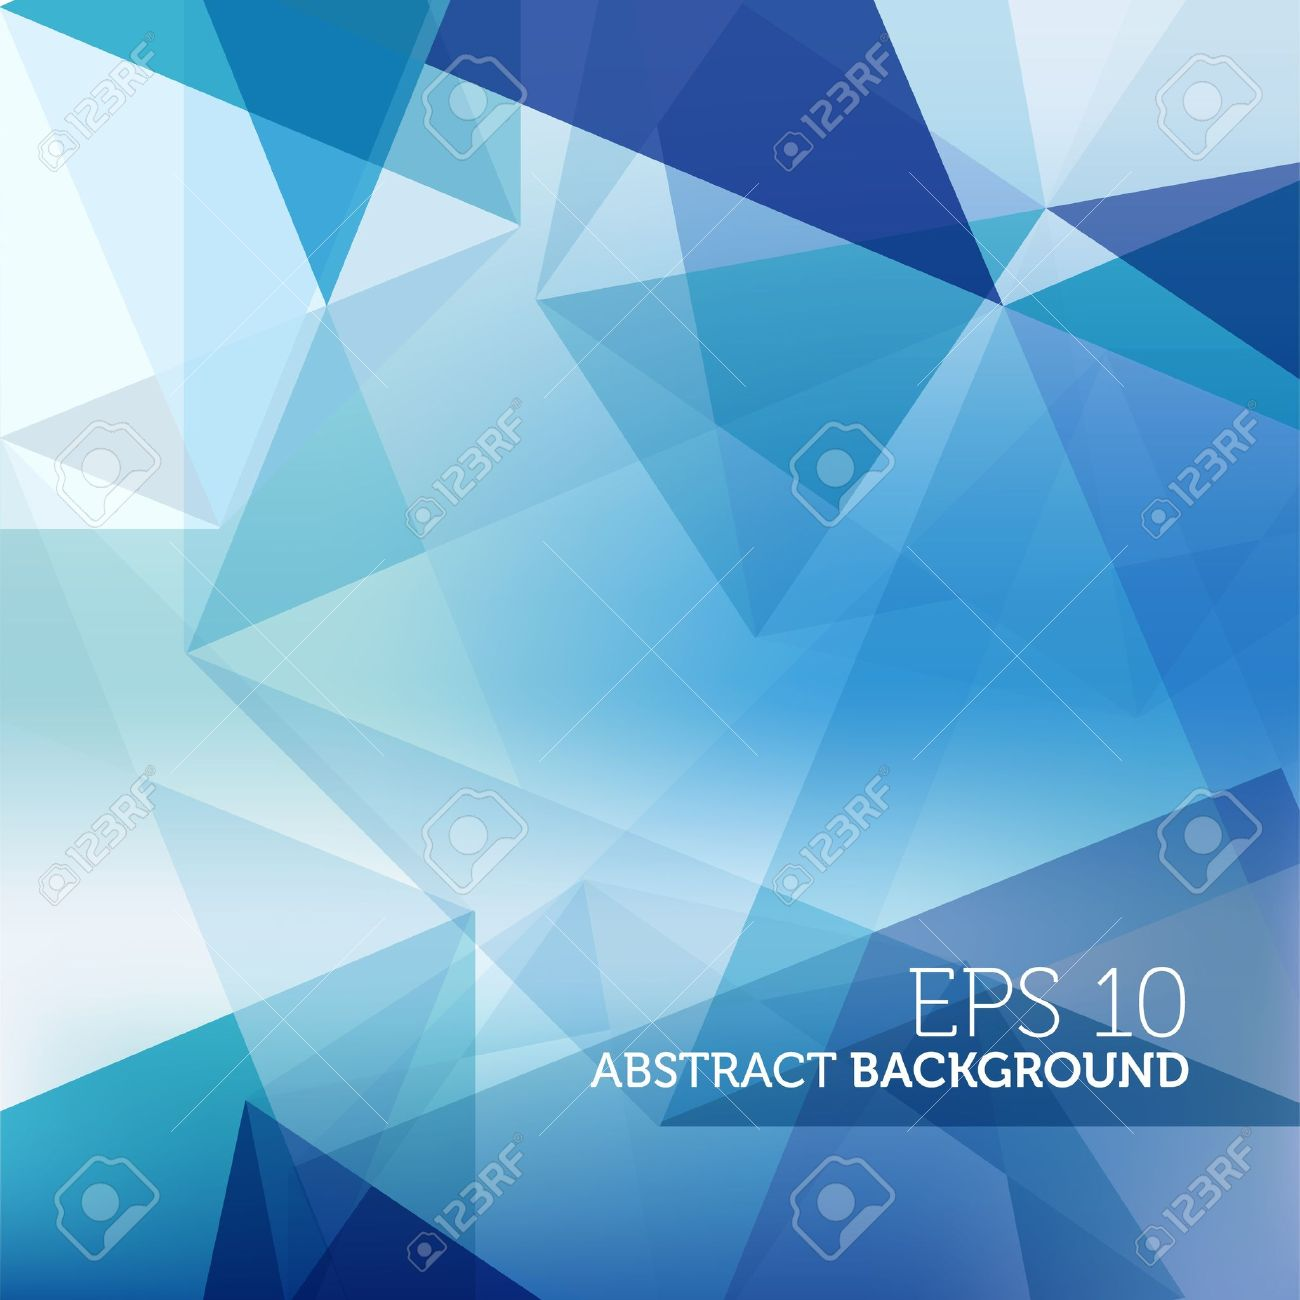 Abstract Blue Business Background Stock Vector - 15178604